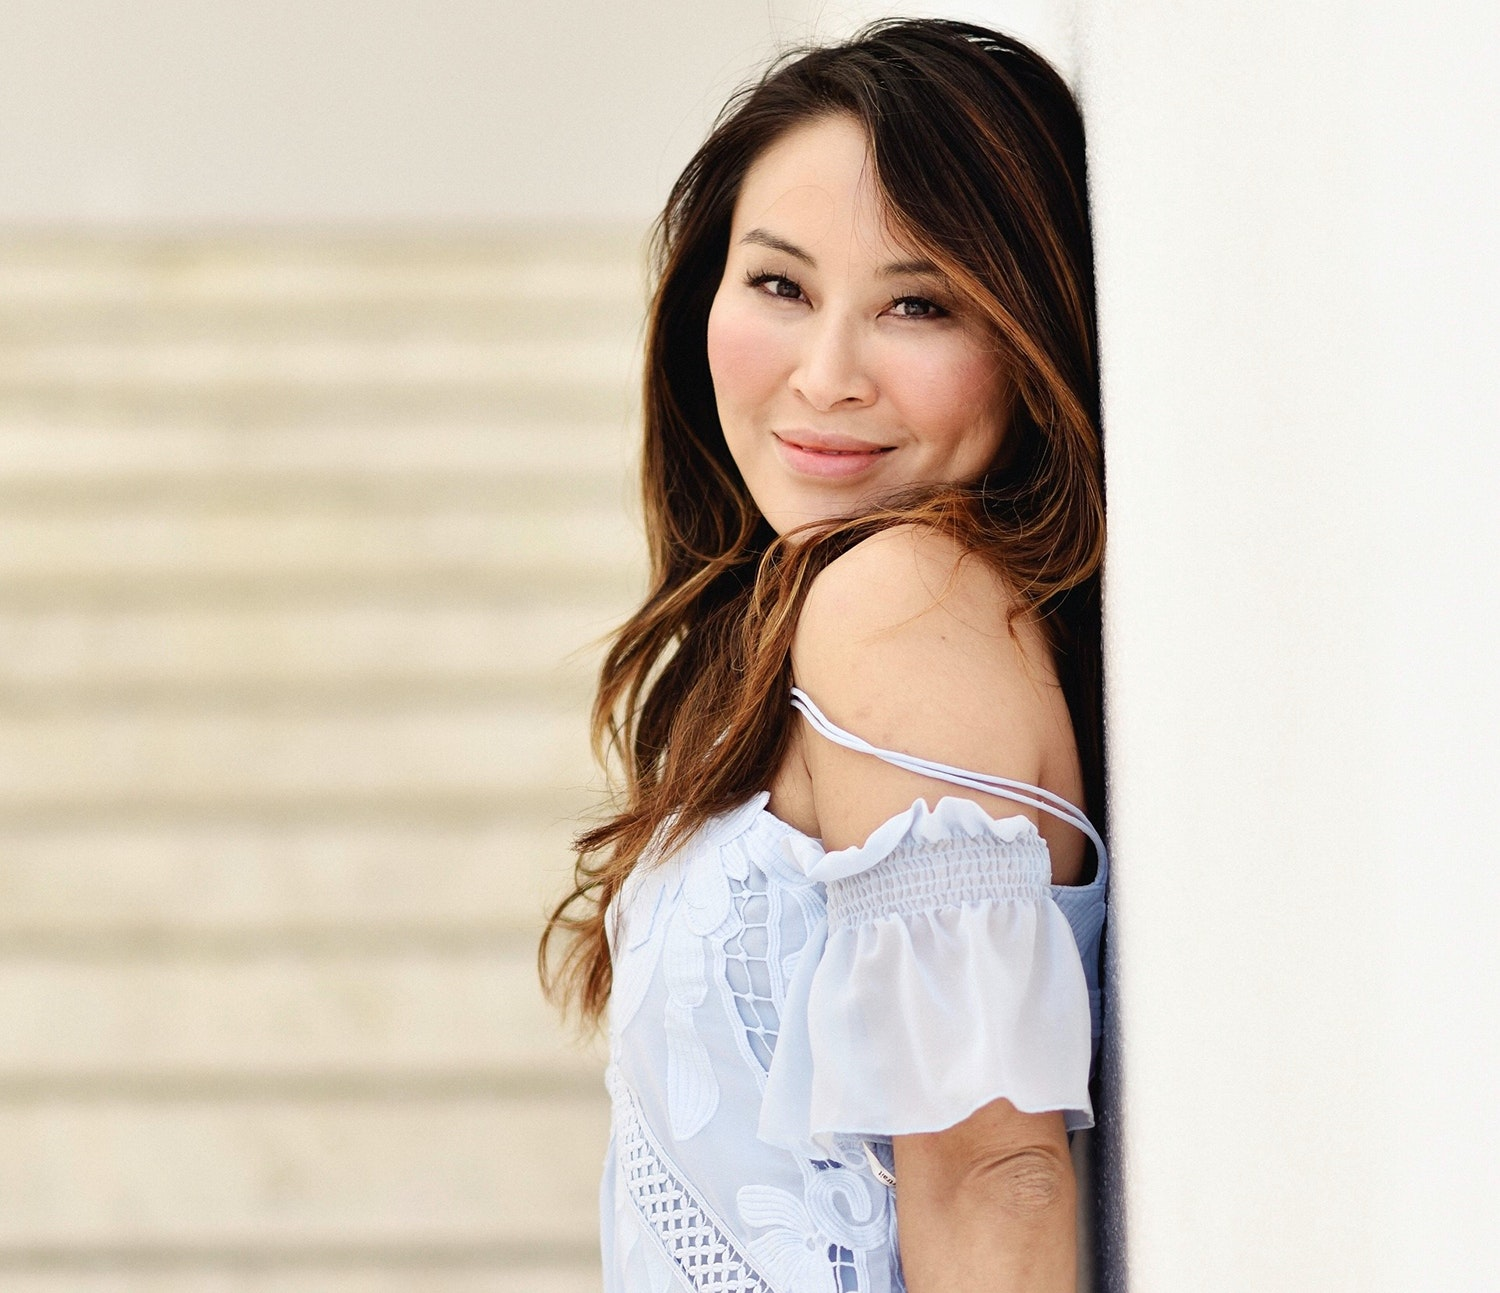 Dermatologist Dr. Annie Chiu on Her Thorough Skincare Routine, Injectables, and Advice for First-Timers